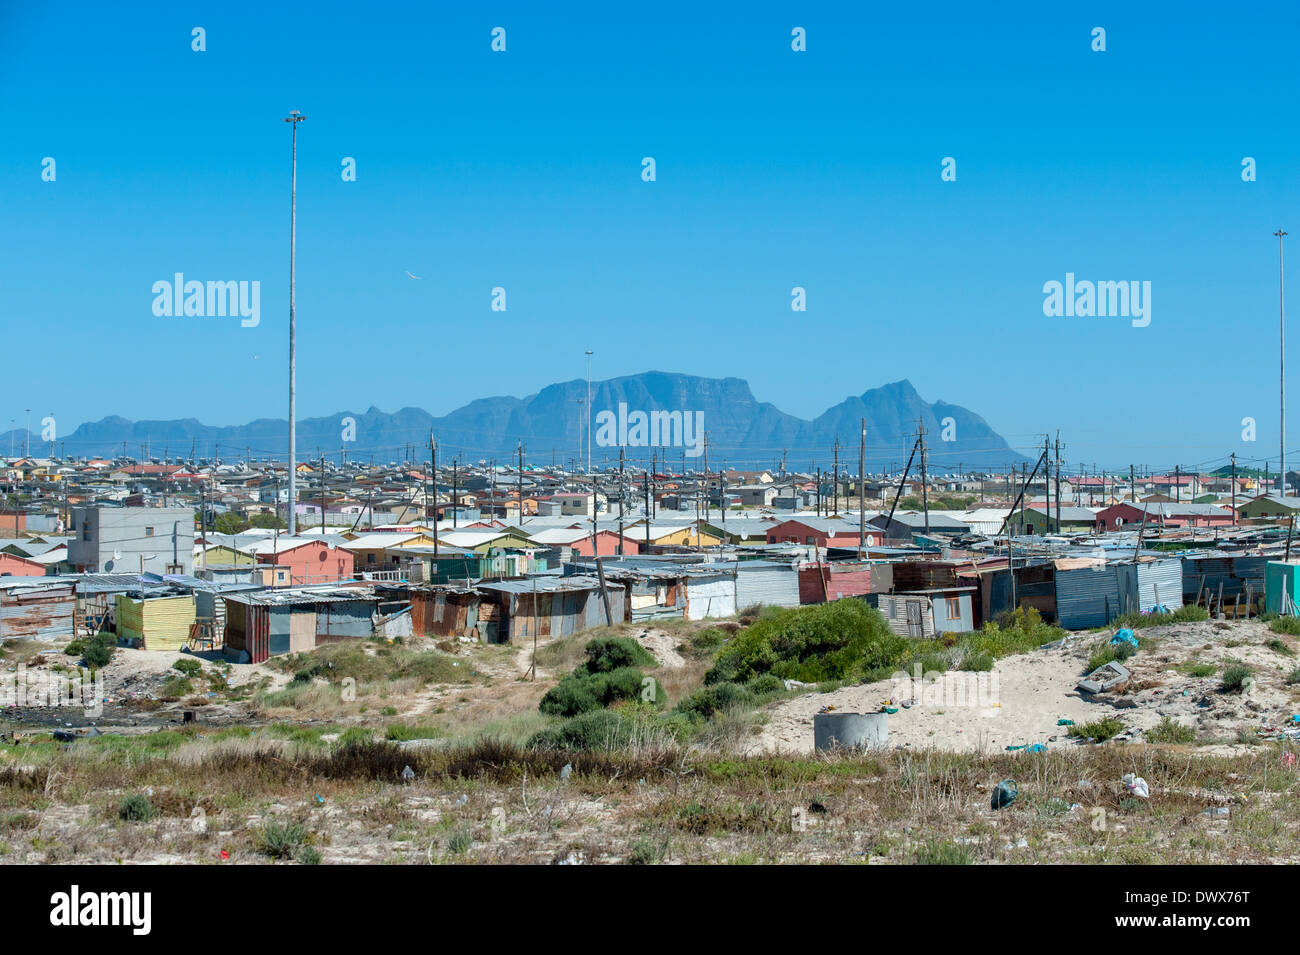 Panoramic view over corrugated-iron huts in Khayelitsha, Cape Town, Western Cape, South Africa - Stock Image